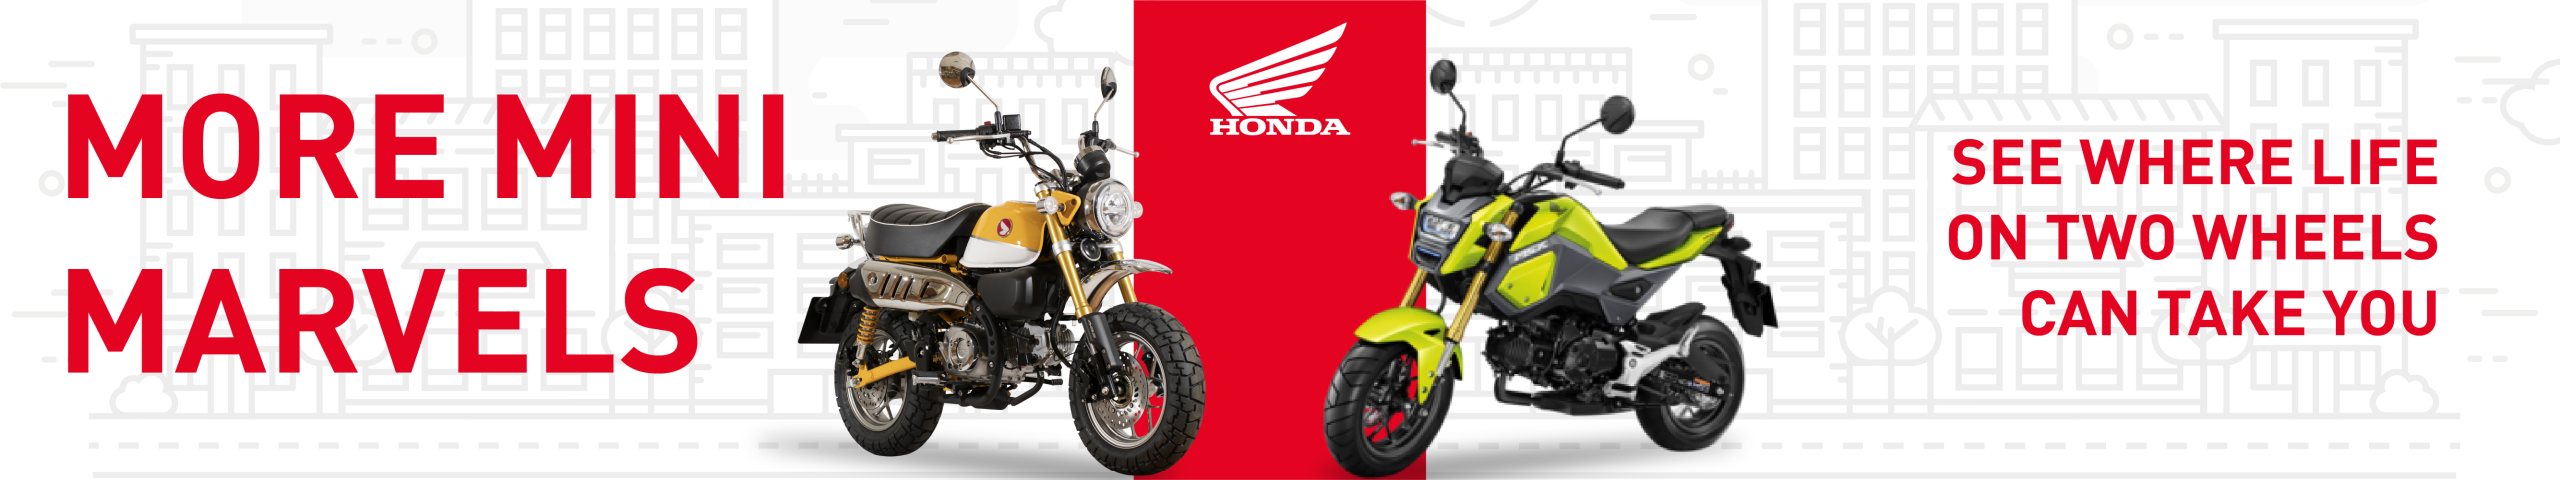 The Young Rider's Guide to 125cc Grom Bikes | Honda Engine Room